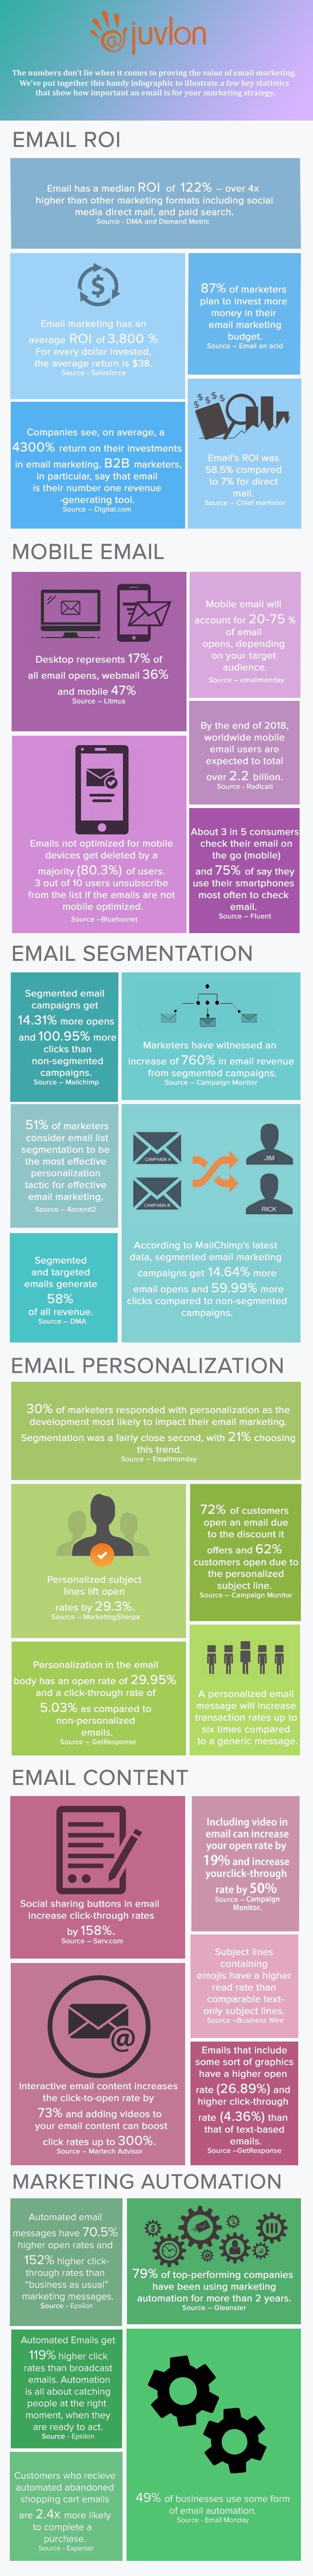 Email Mrketing Statistics To Guide Your Email Campaign Strategy